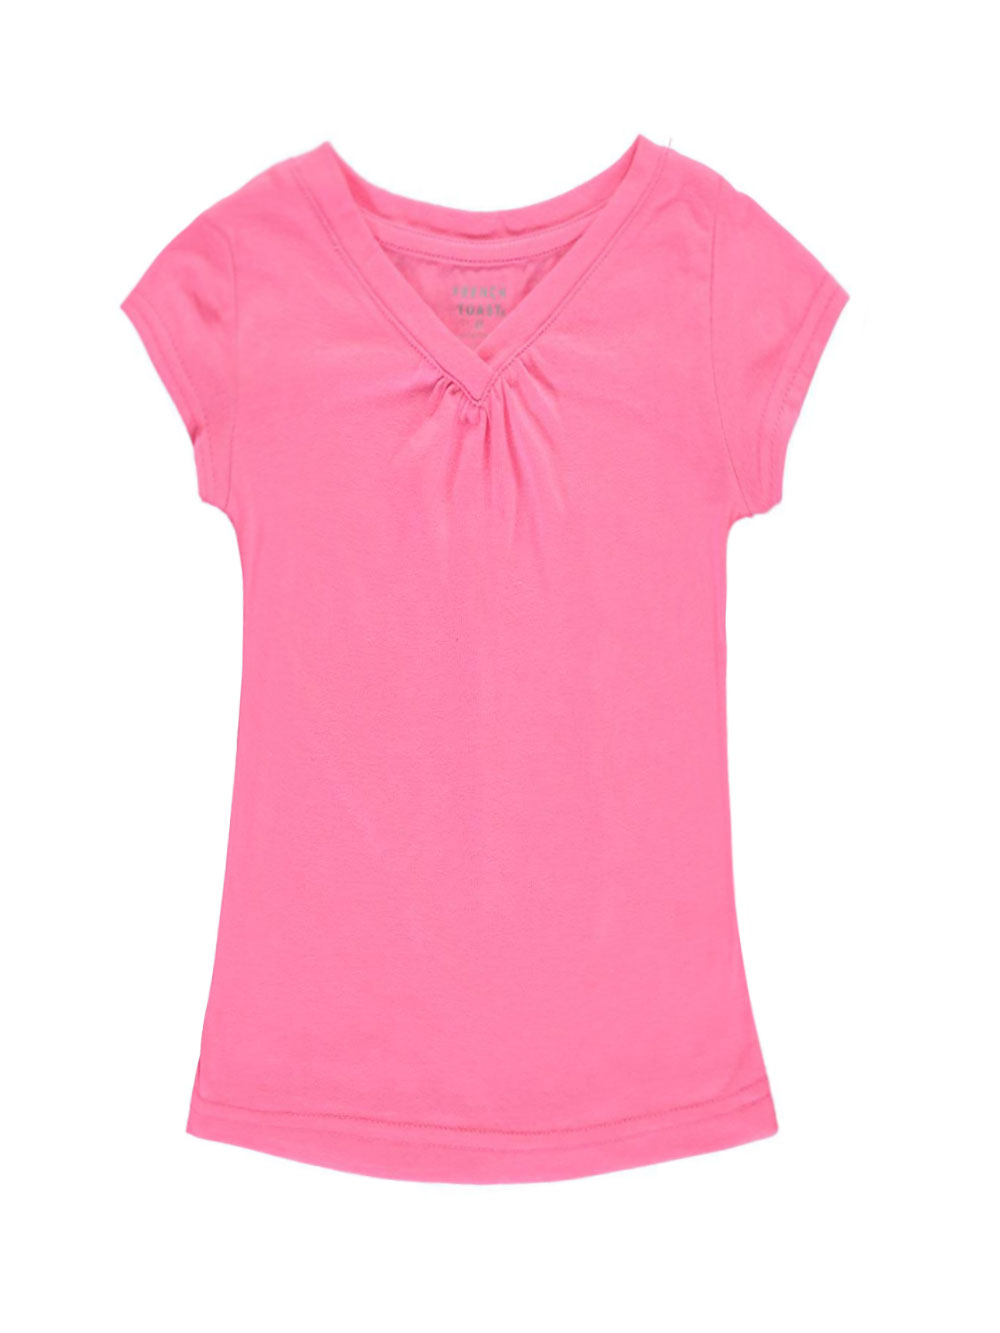 Image of French Toast Little Girls Toddler Ruched VNeck TShirt Sizes 2T  4T  bright pink 2t